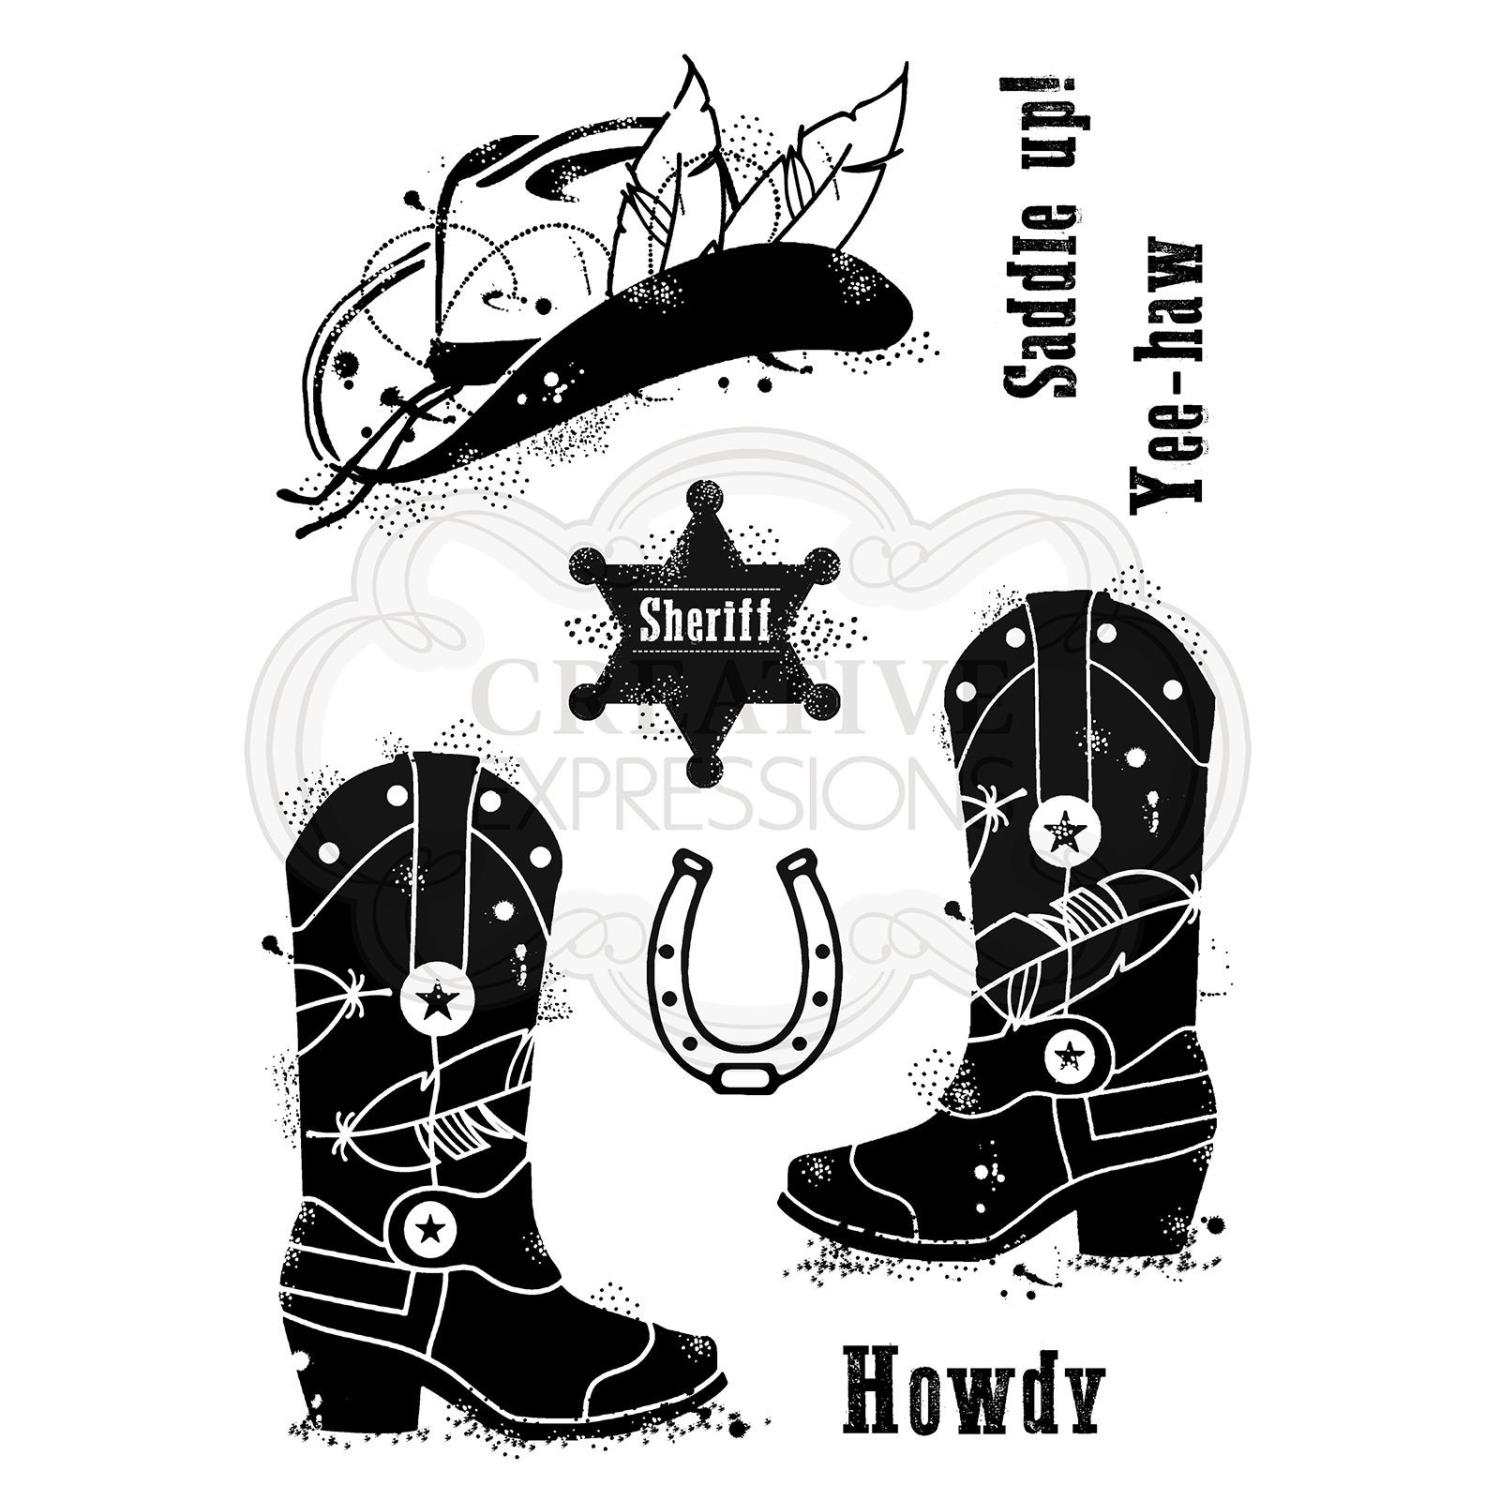 Howdy cowboy - Clear stamp set